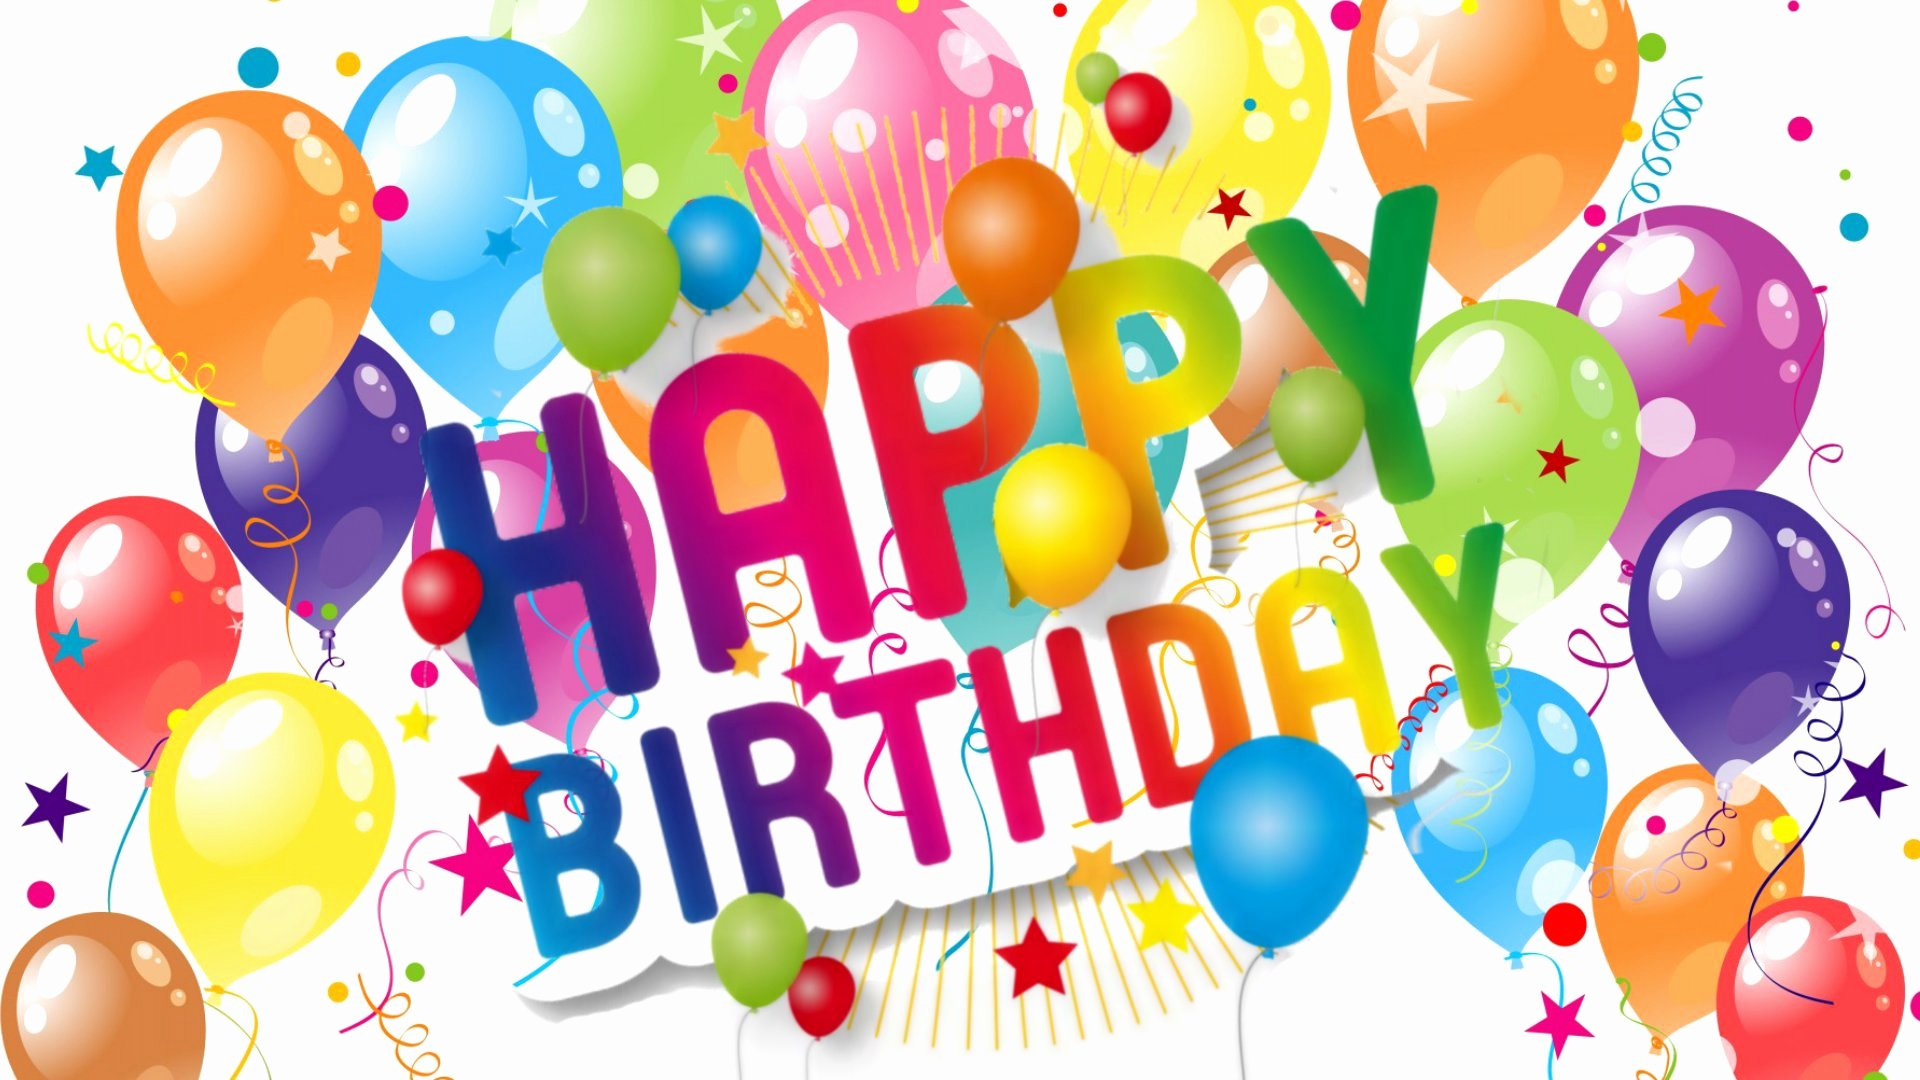 Happy Bday Wallpapers Free Awesome Birthday Wallpaper Download